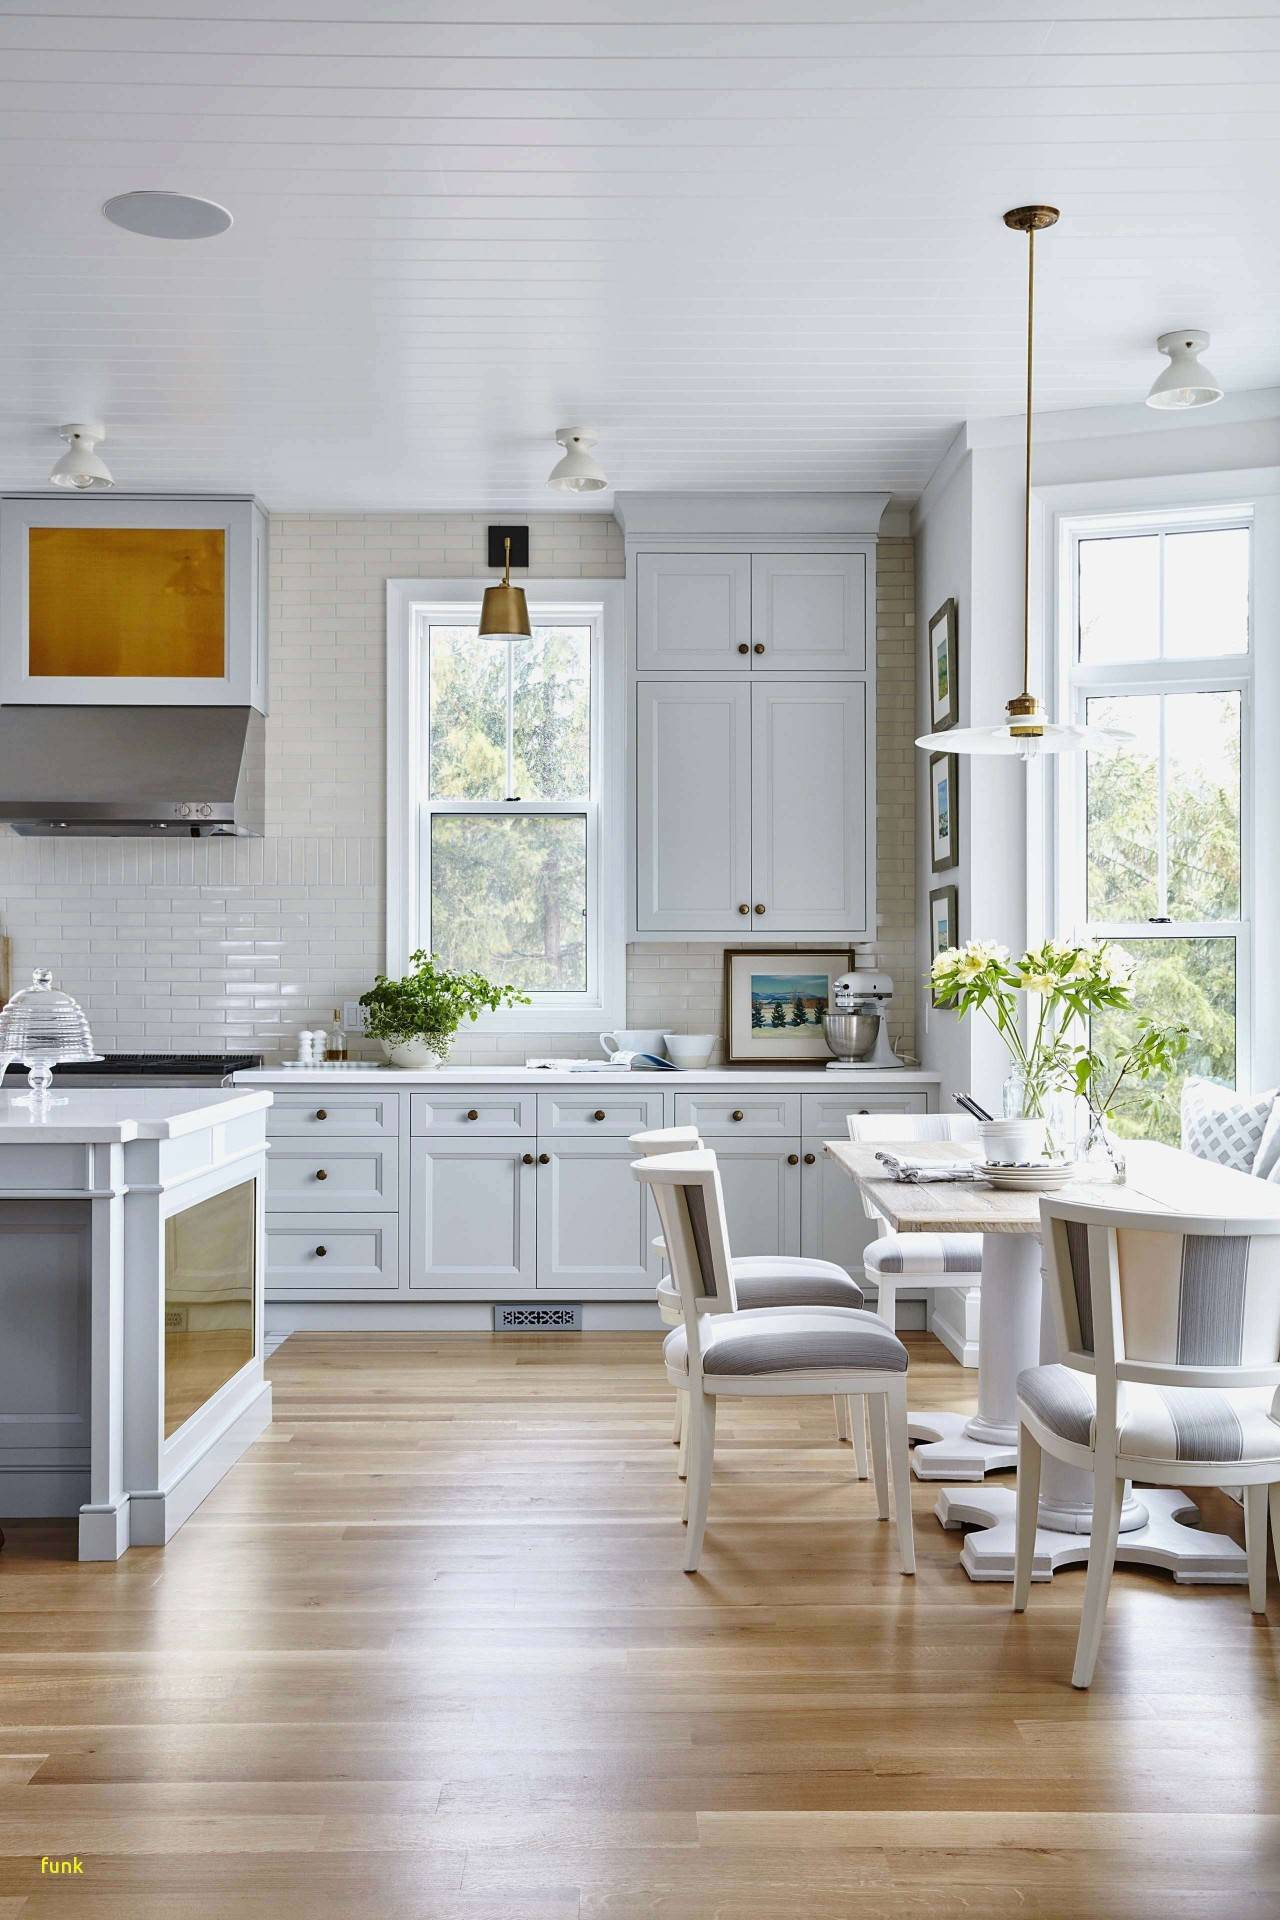 how much does it cost for hardwood floors of 24 fascinating home decor ideas kitchen image pertaining to interior design for small apartments elegant kitchen joys kitchen joys kitchen 0d kit